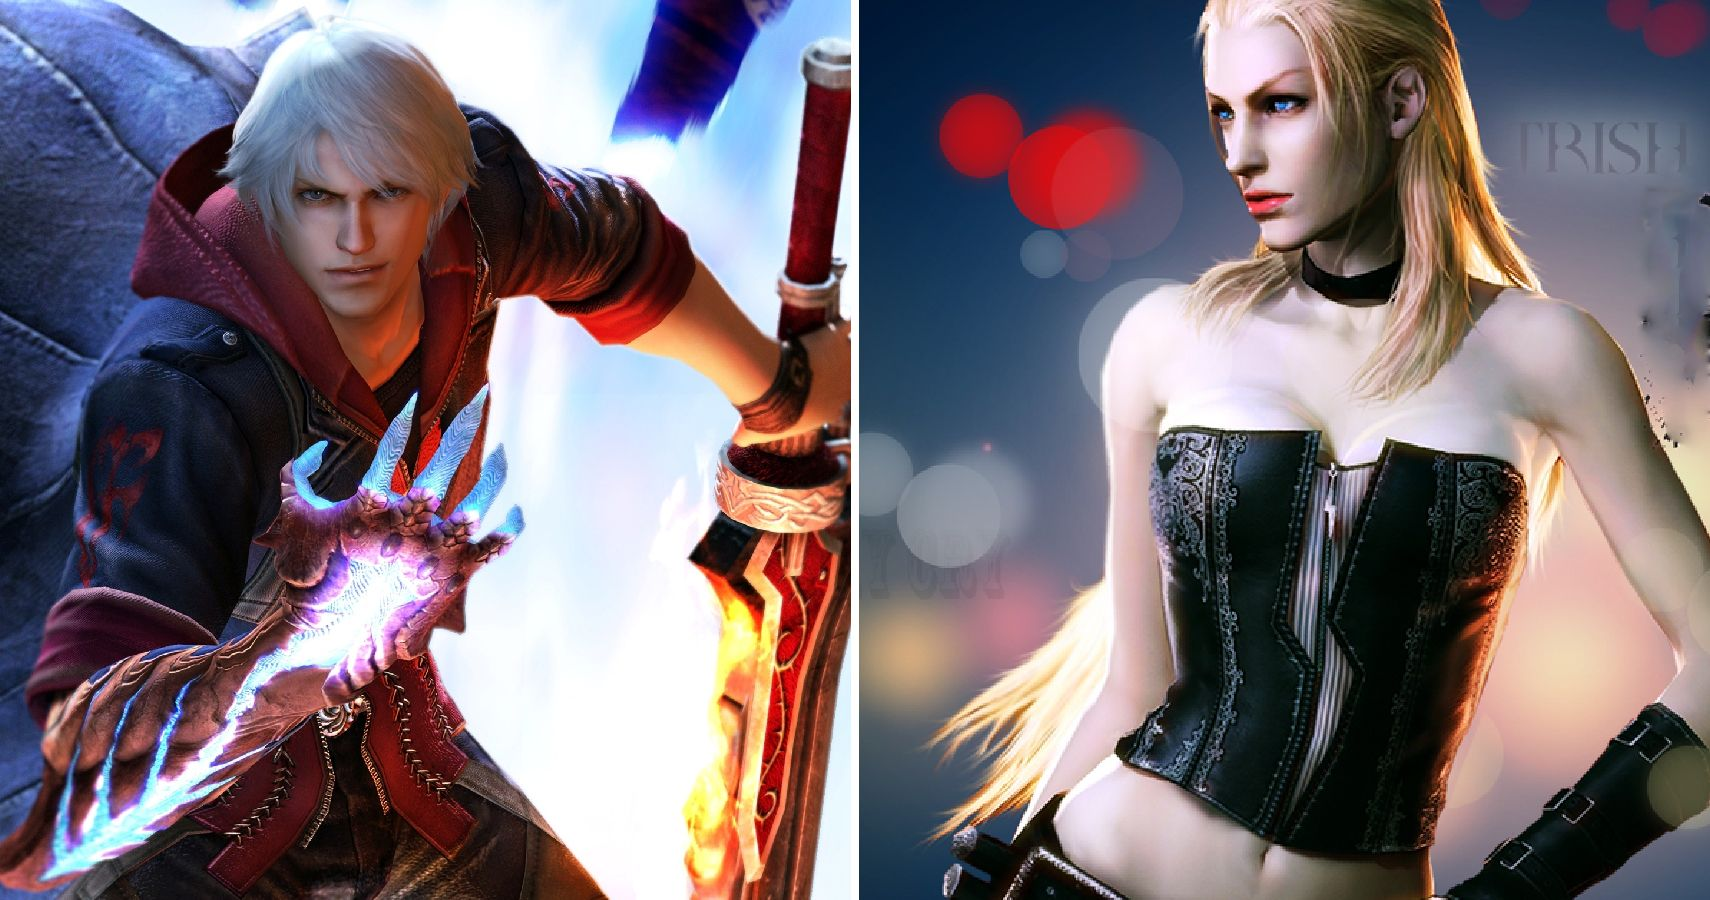 Devil May Cry: The 8 Most Powerful Characters (And The 7